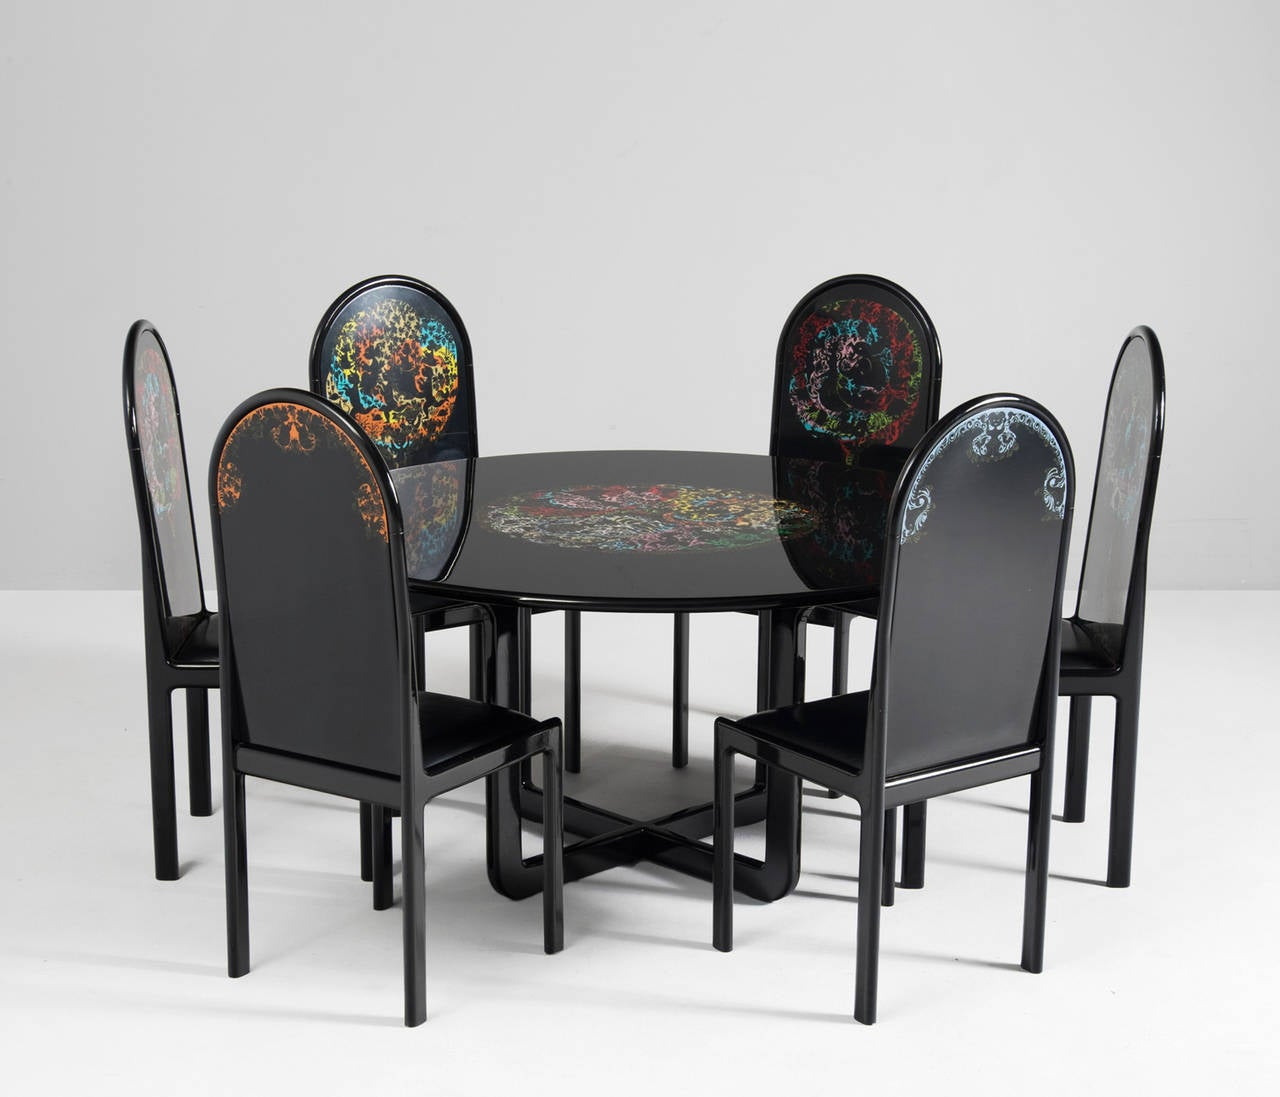 Dining Room Set With Bench Seating Painted Tongue And: Bjorn Wiinblad Hand-Painted Lacquered Dining Set